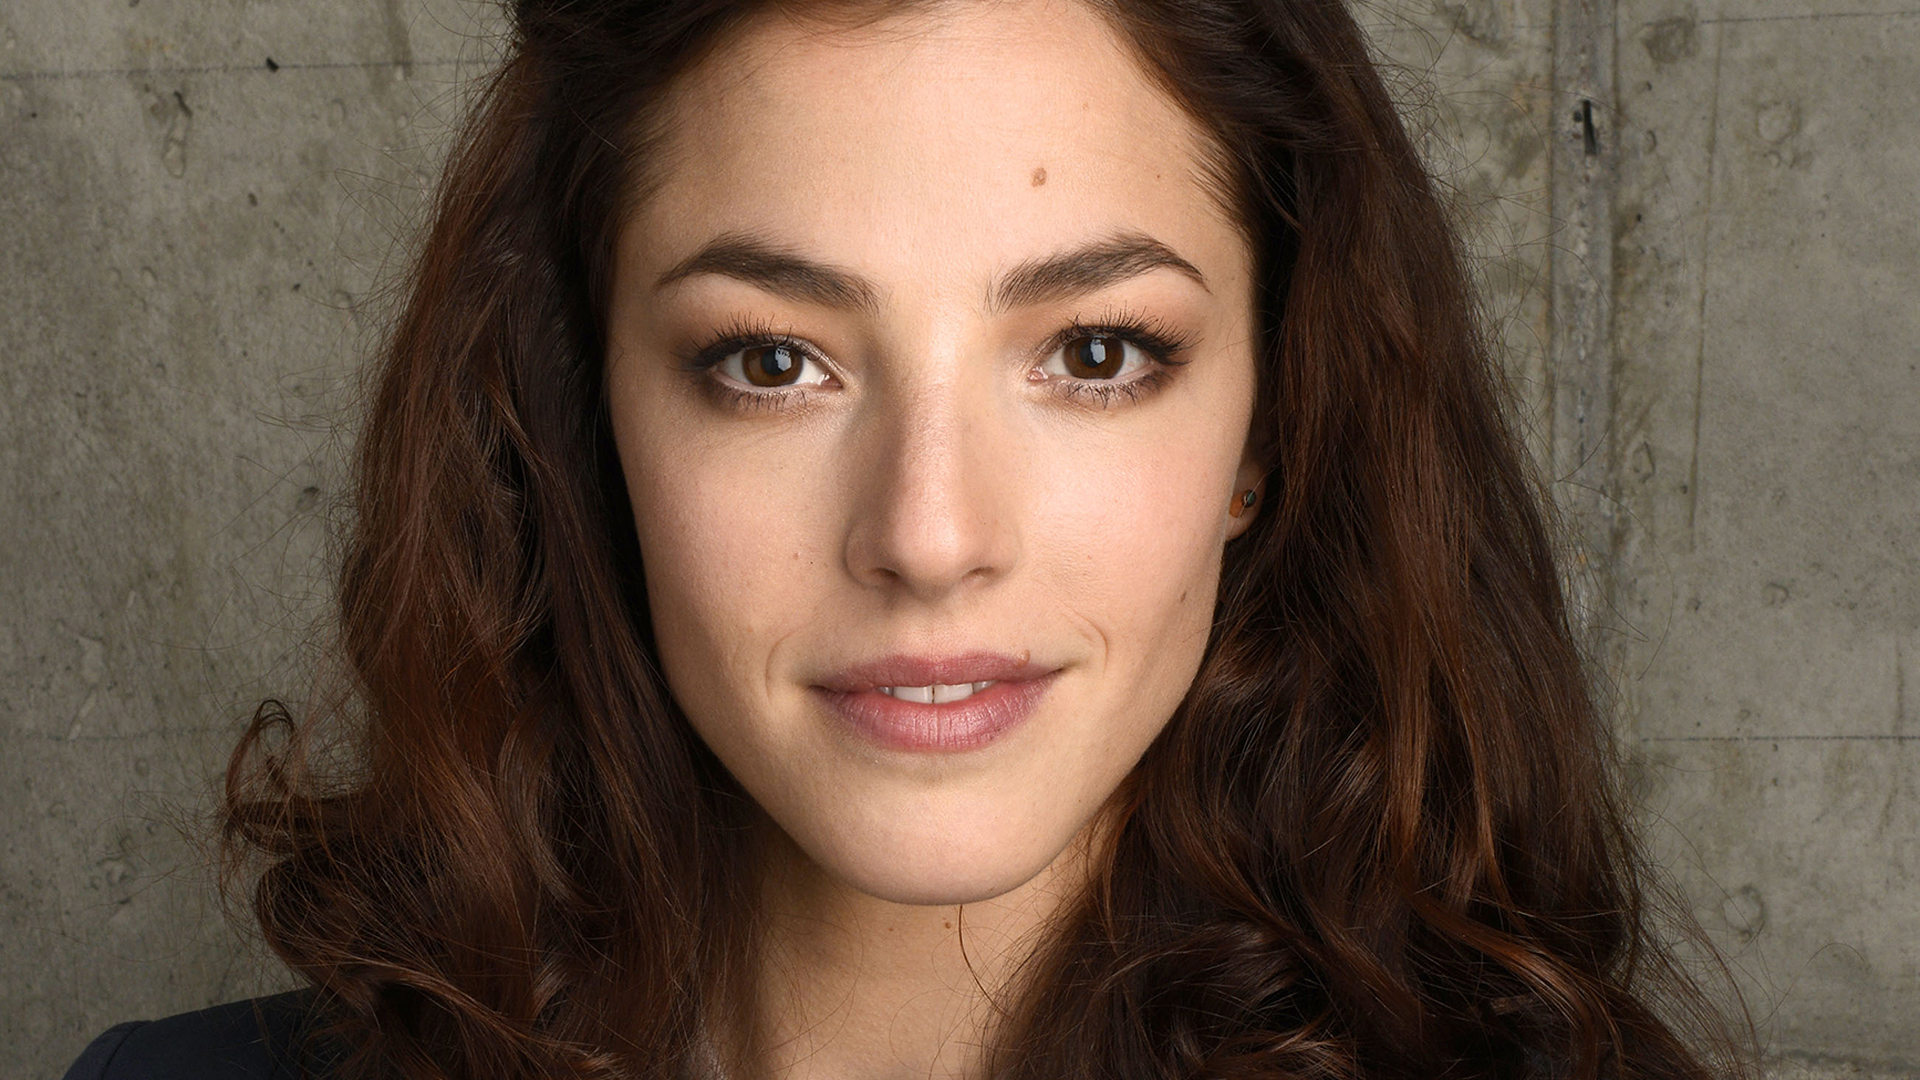 Think, that Olivia thirlby in a porno phrase necessary